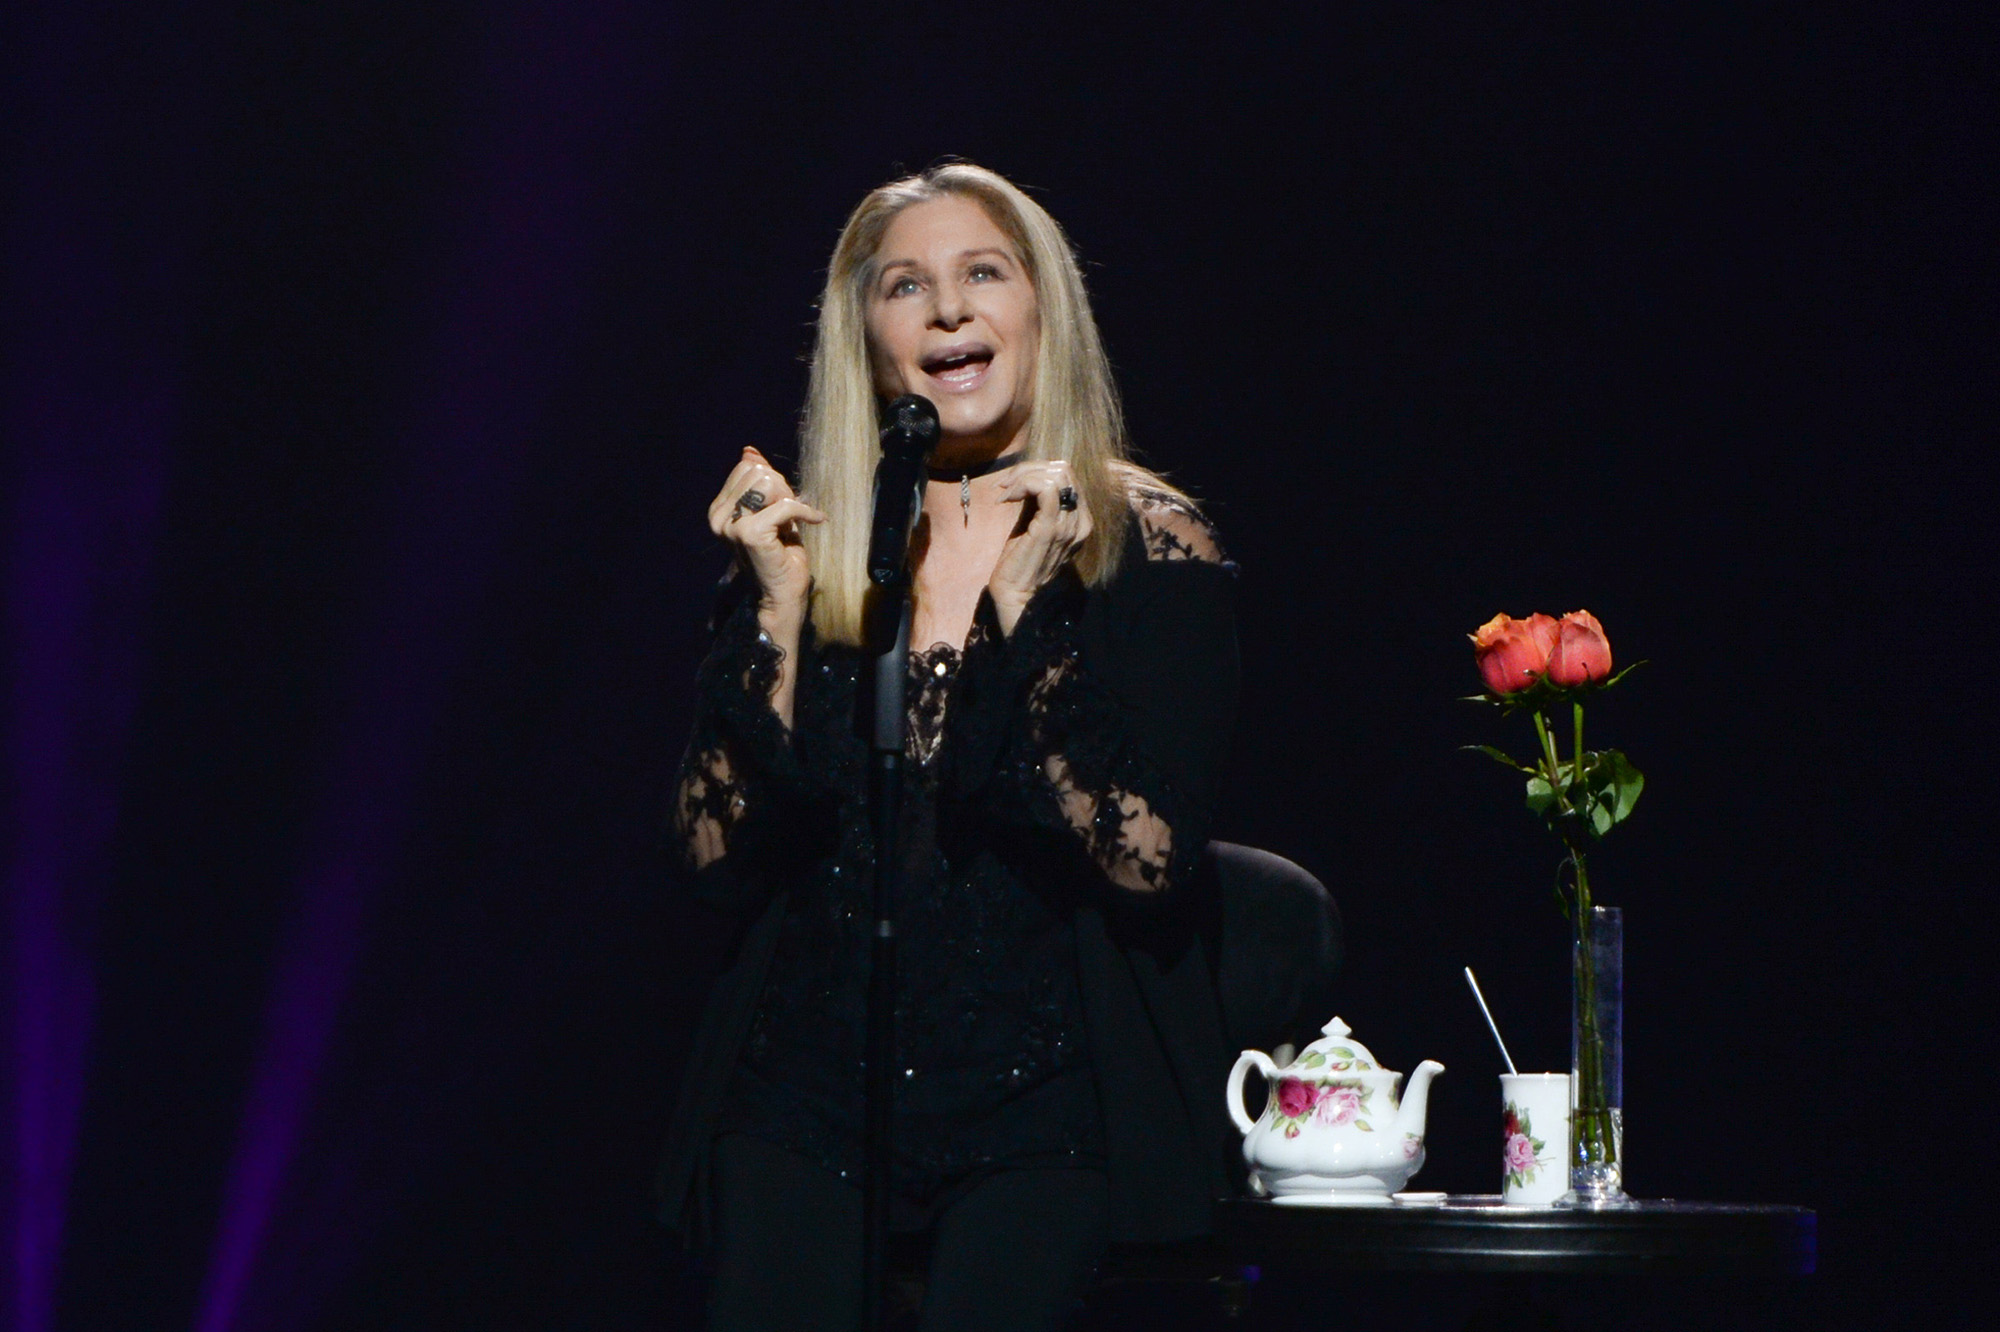 Barbra Streisand performs onstage during the Barbra - The Music...The Mem'ries... The Magic! Tour on December 3, 2016 in Sunrise, Florida.  (Photo by John Parra/WireImage )